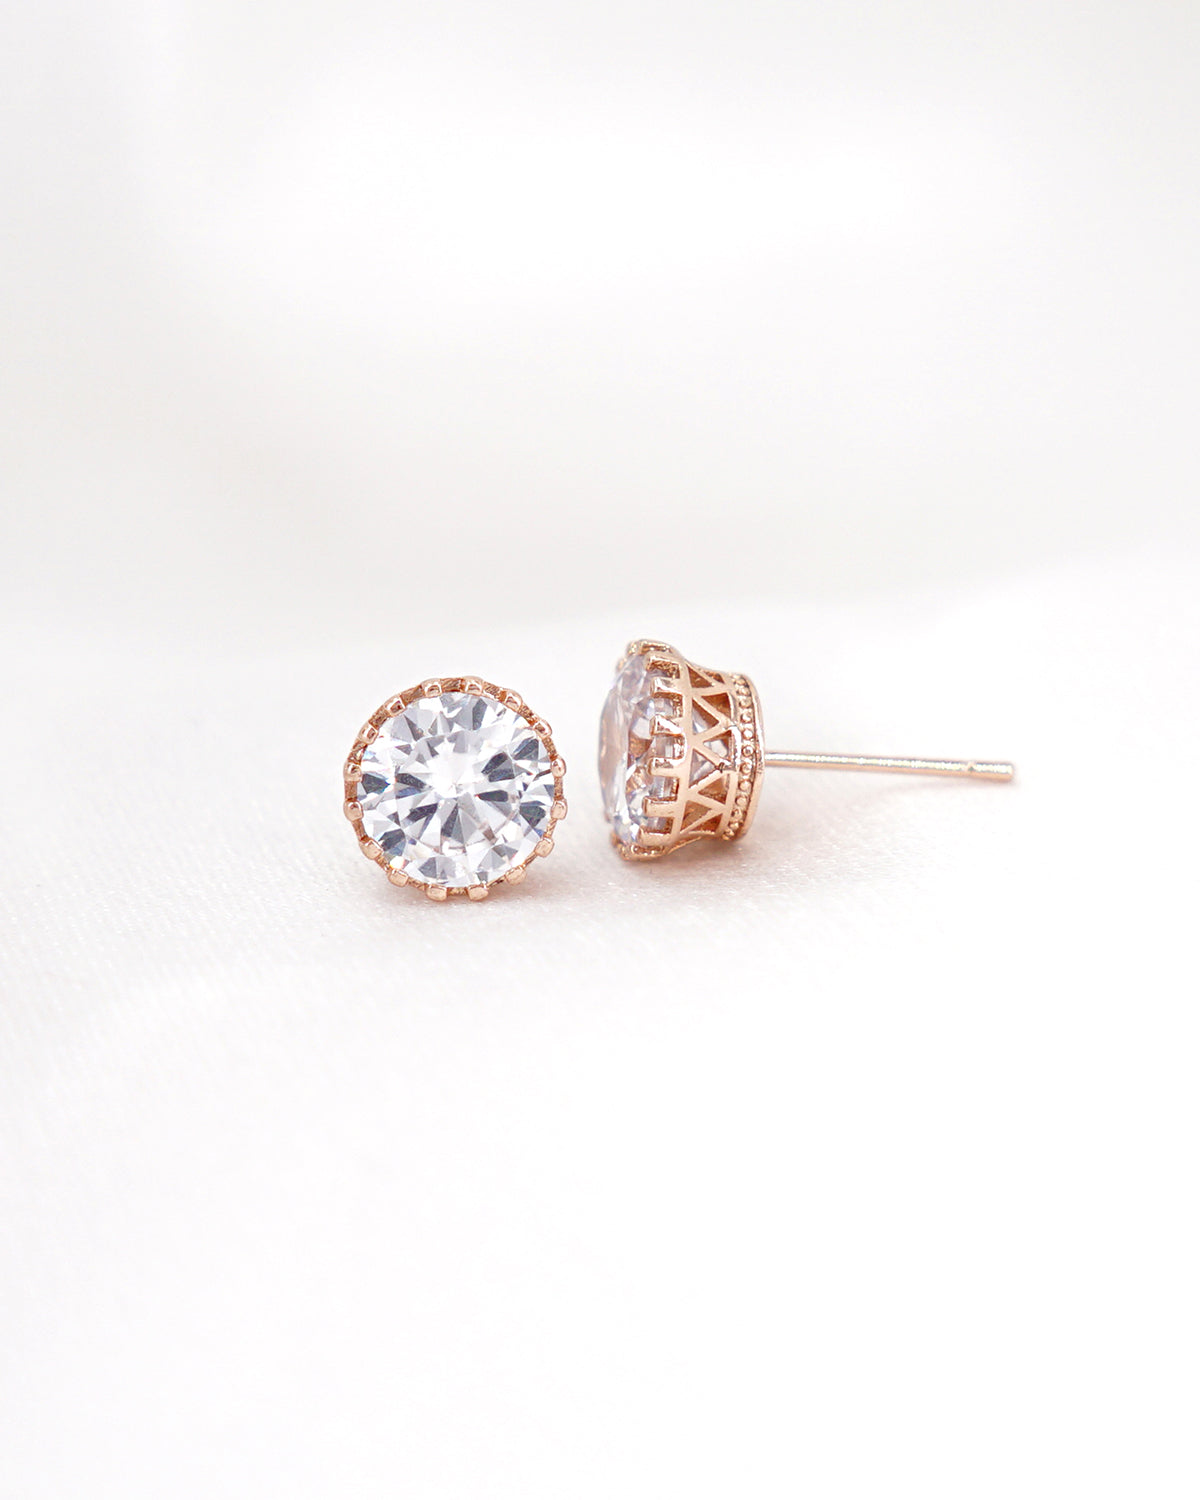 Rose Gold Stud Earrings | Everyday Jewelry | Bridesmaids Jewelry Gift